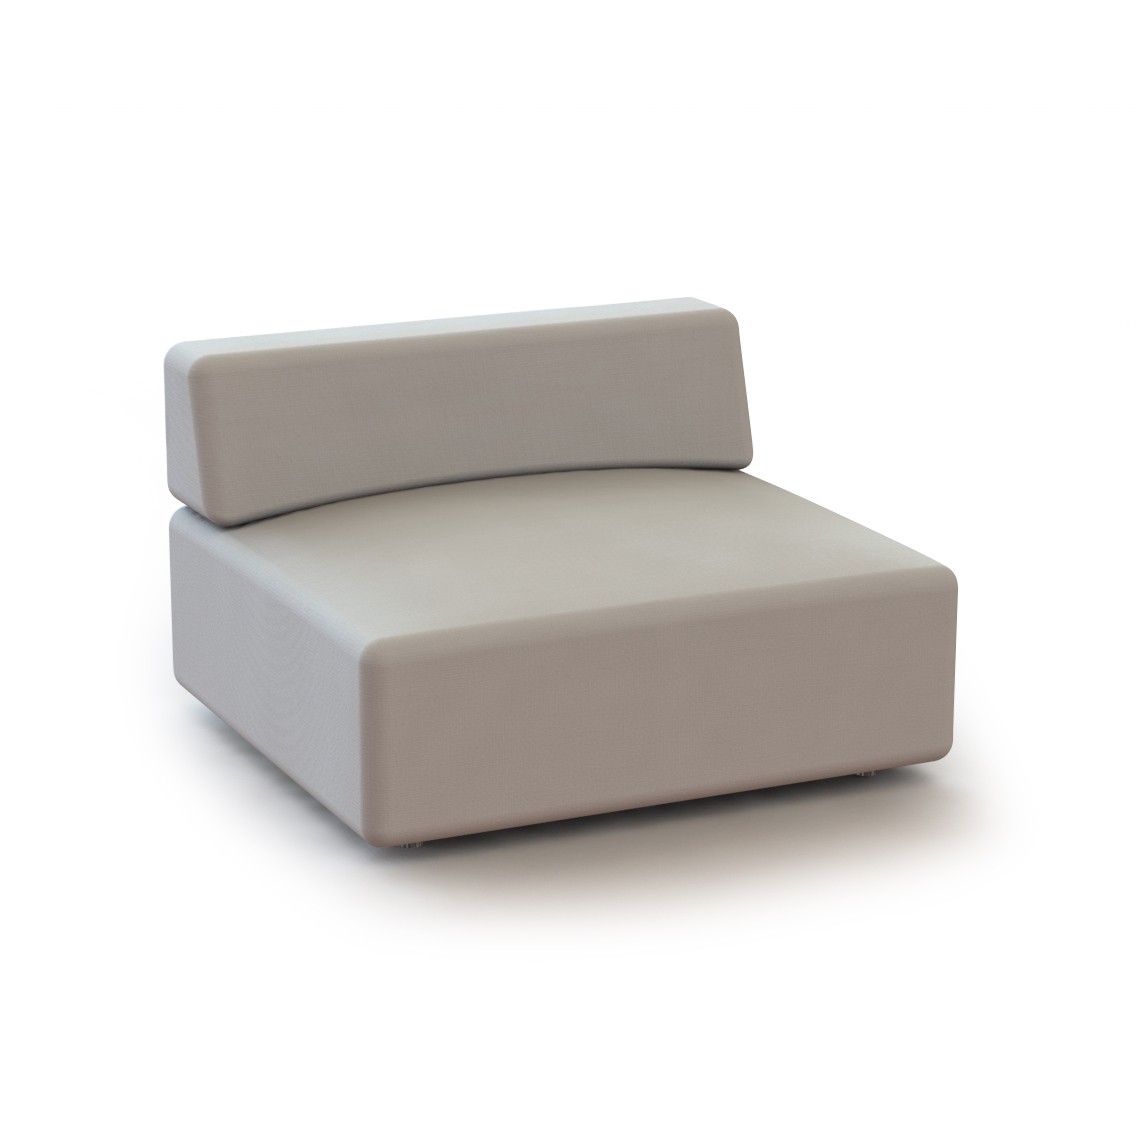 Grandfield, Sofa system by Christophe Pillet